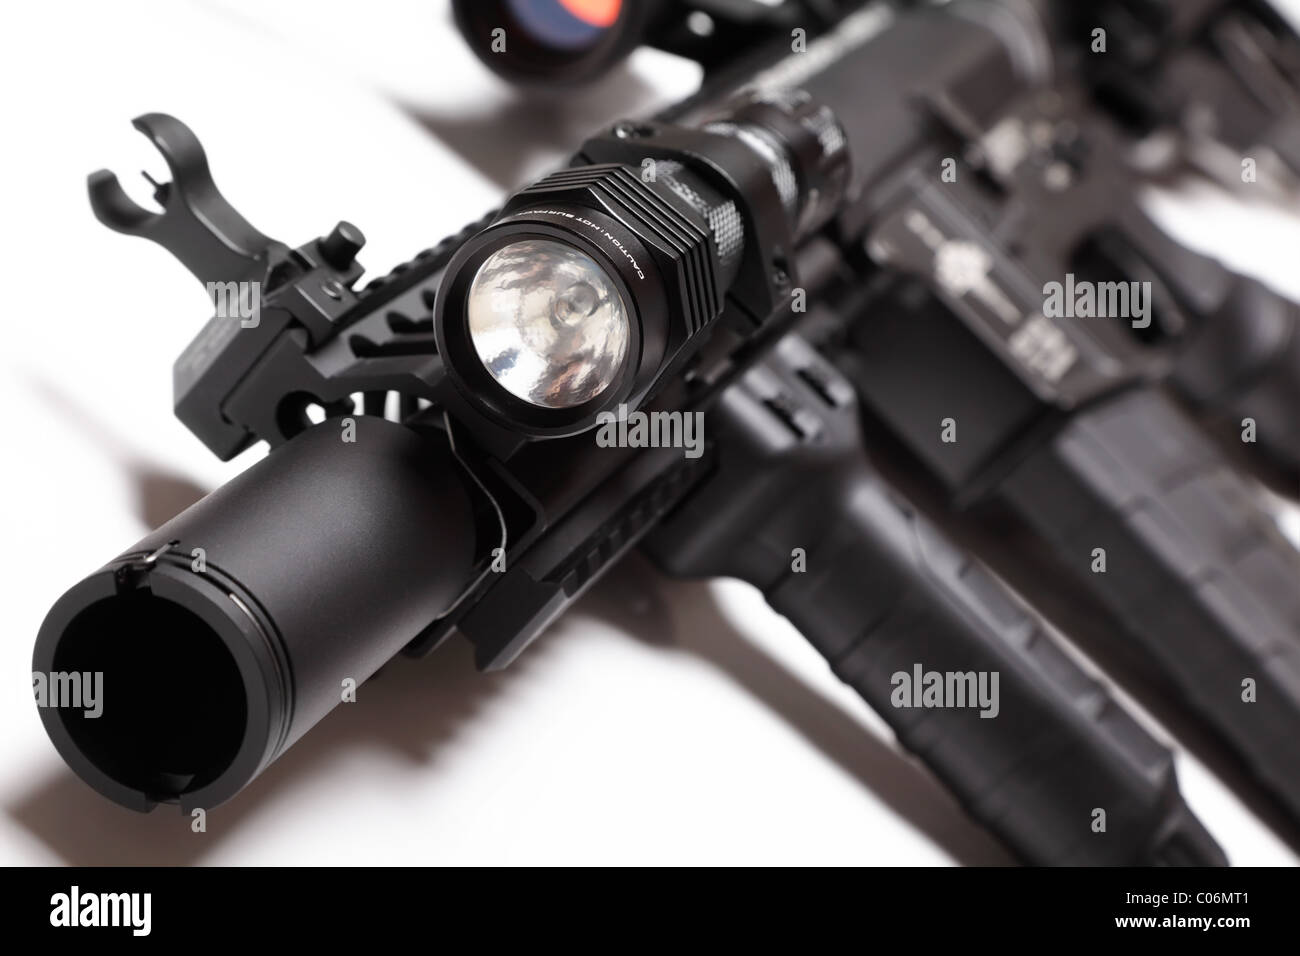 M4A1 carbine with RIS/RAS forearm and tactical flashlight. Shallow DOF. - Stock Image